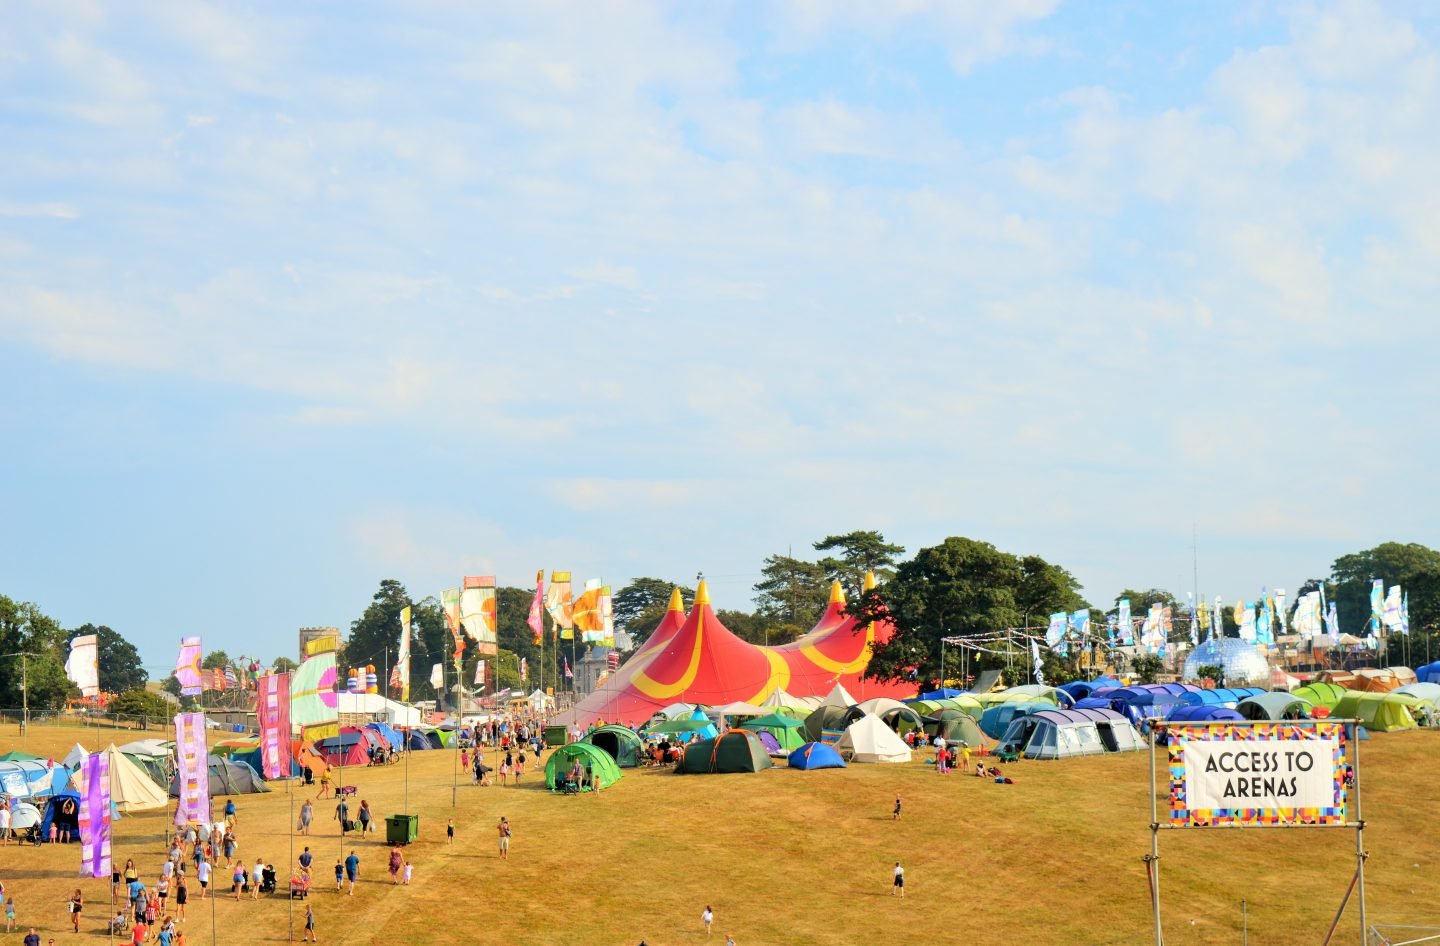 Our Family Trip to Camp Bestival 2018